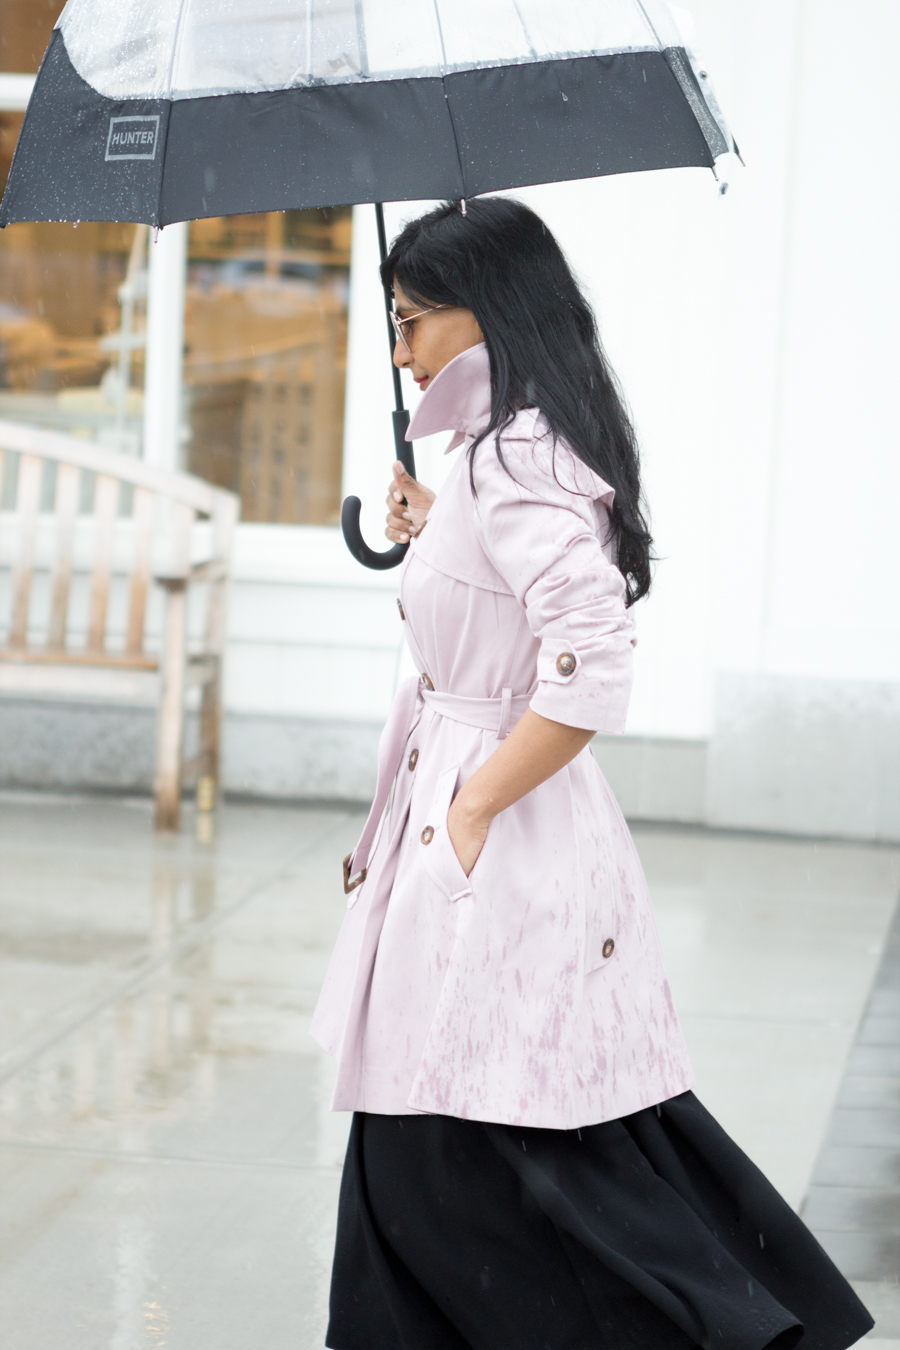 trench, trench coat, rain coat, spring topper, easy chic, preppy chic, blush coat, midi skirt, full black skirt, red lips, hunter, mommy style, mom style, petite fashion, boston